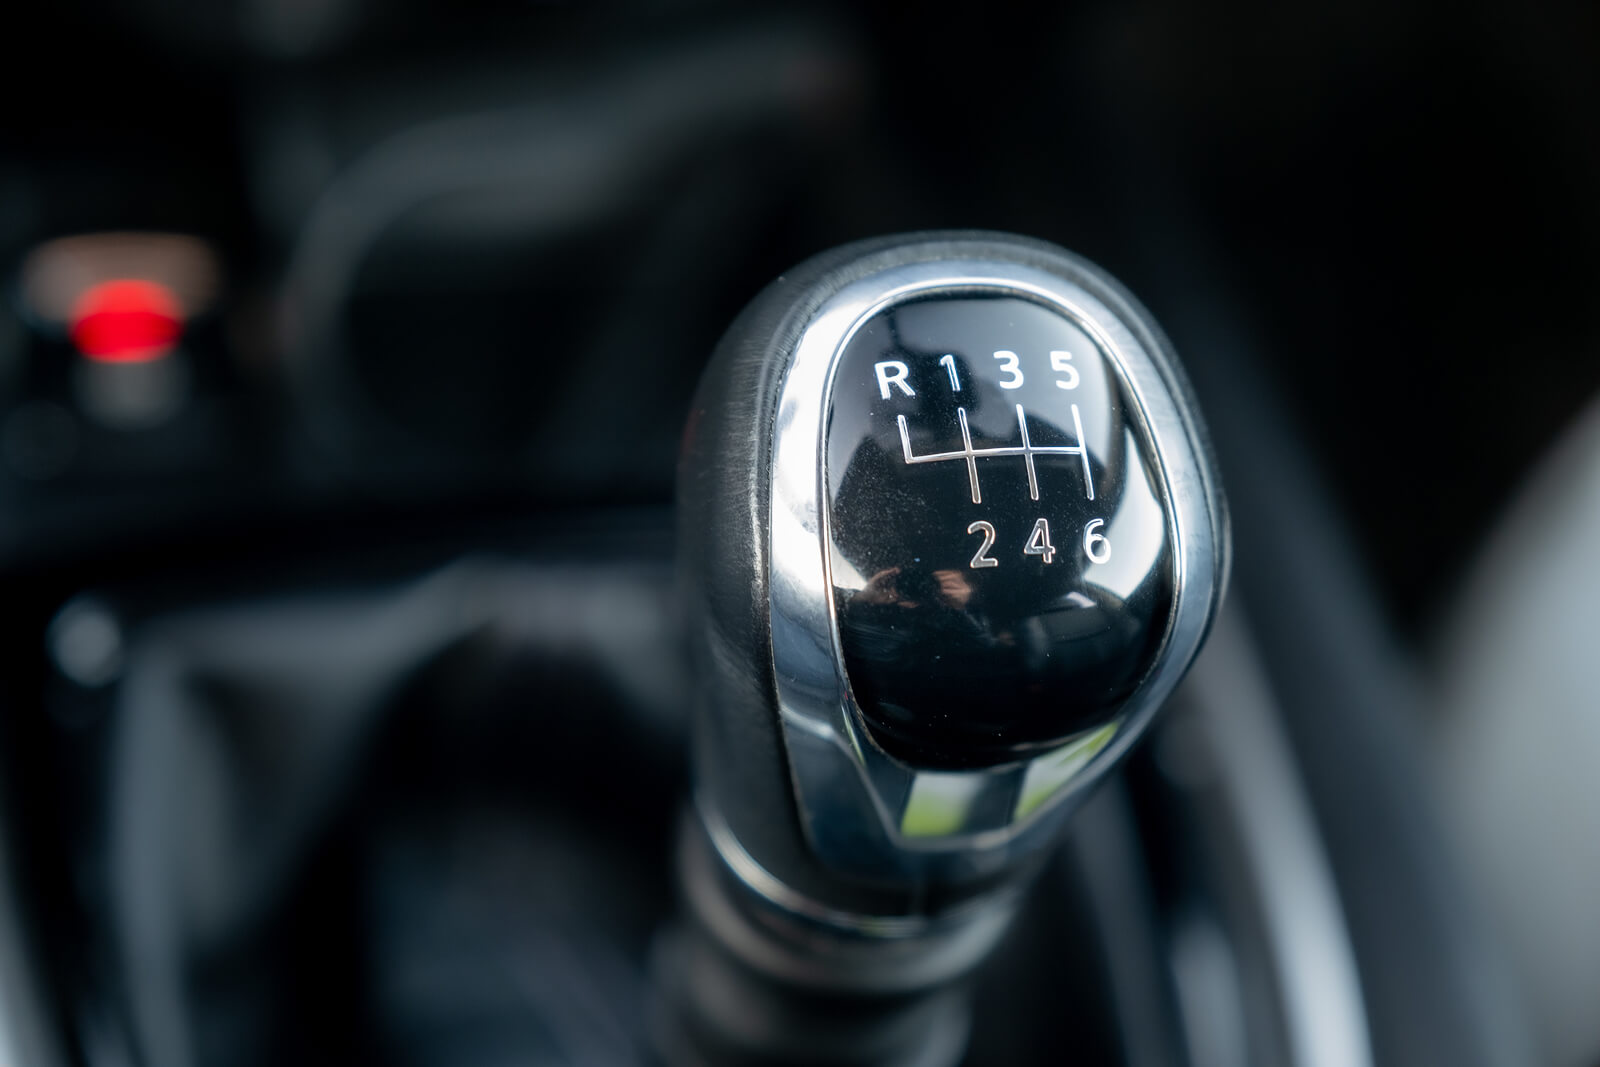 Manual gear stick inside a car